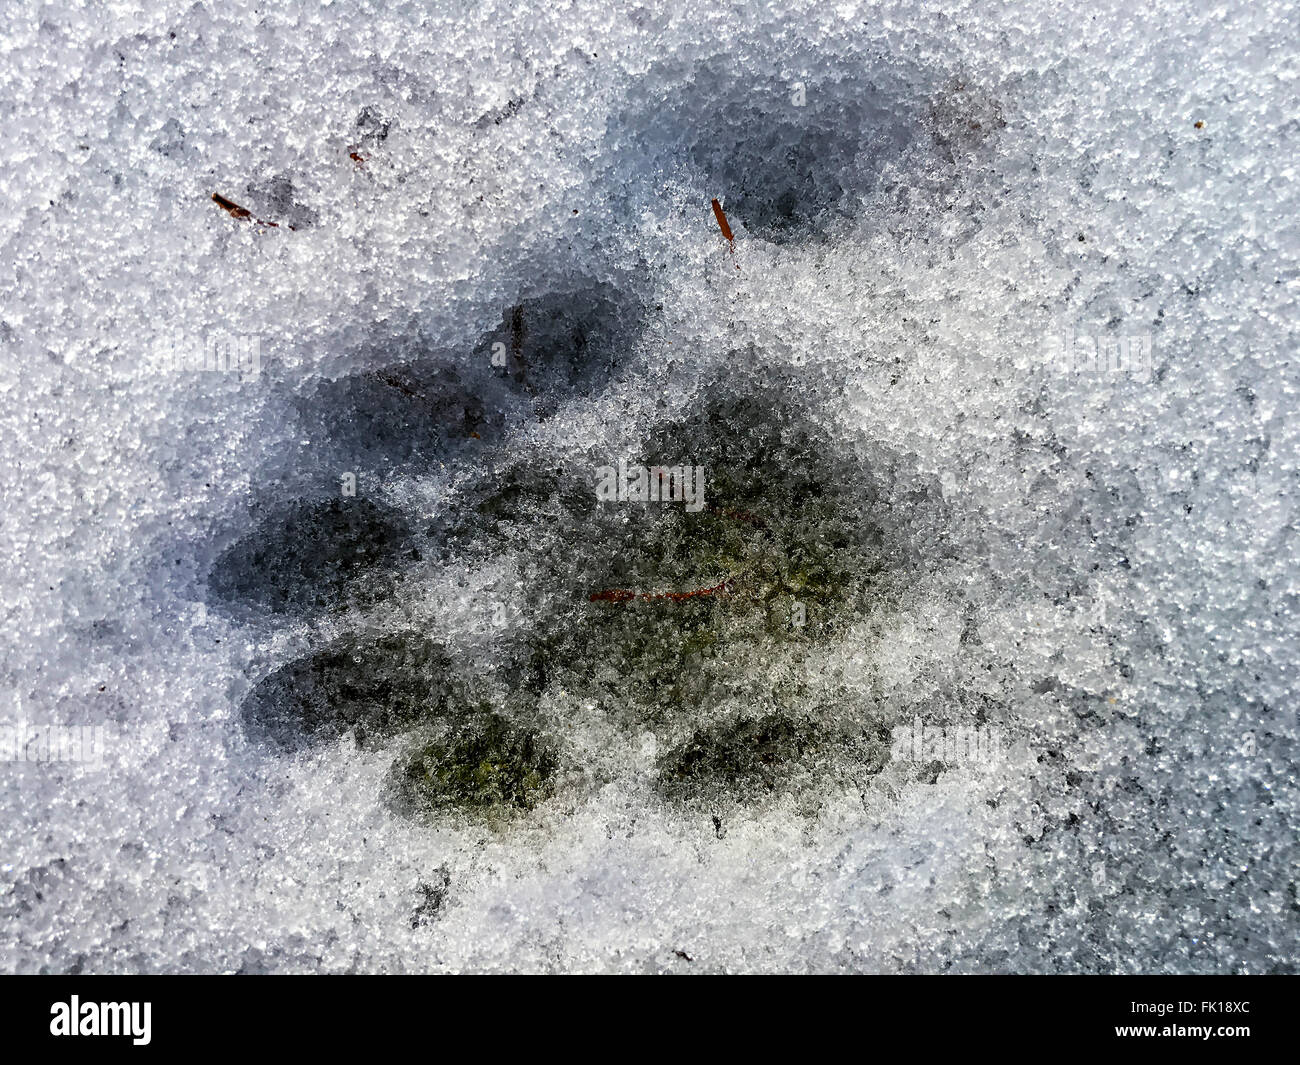 A cats paw print in the snow.  He is polydactyl and has seven toes which show in the print. - Stock Image